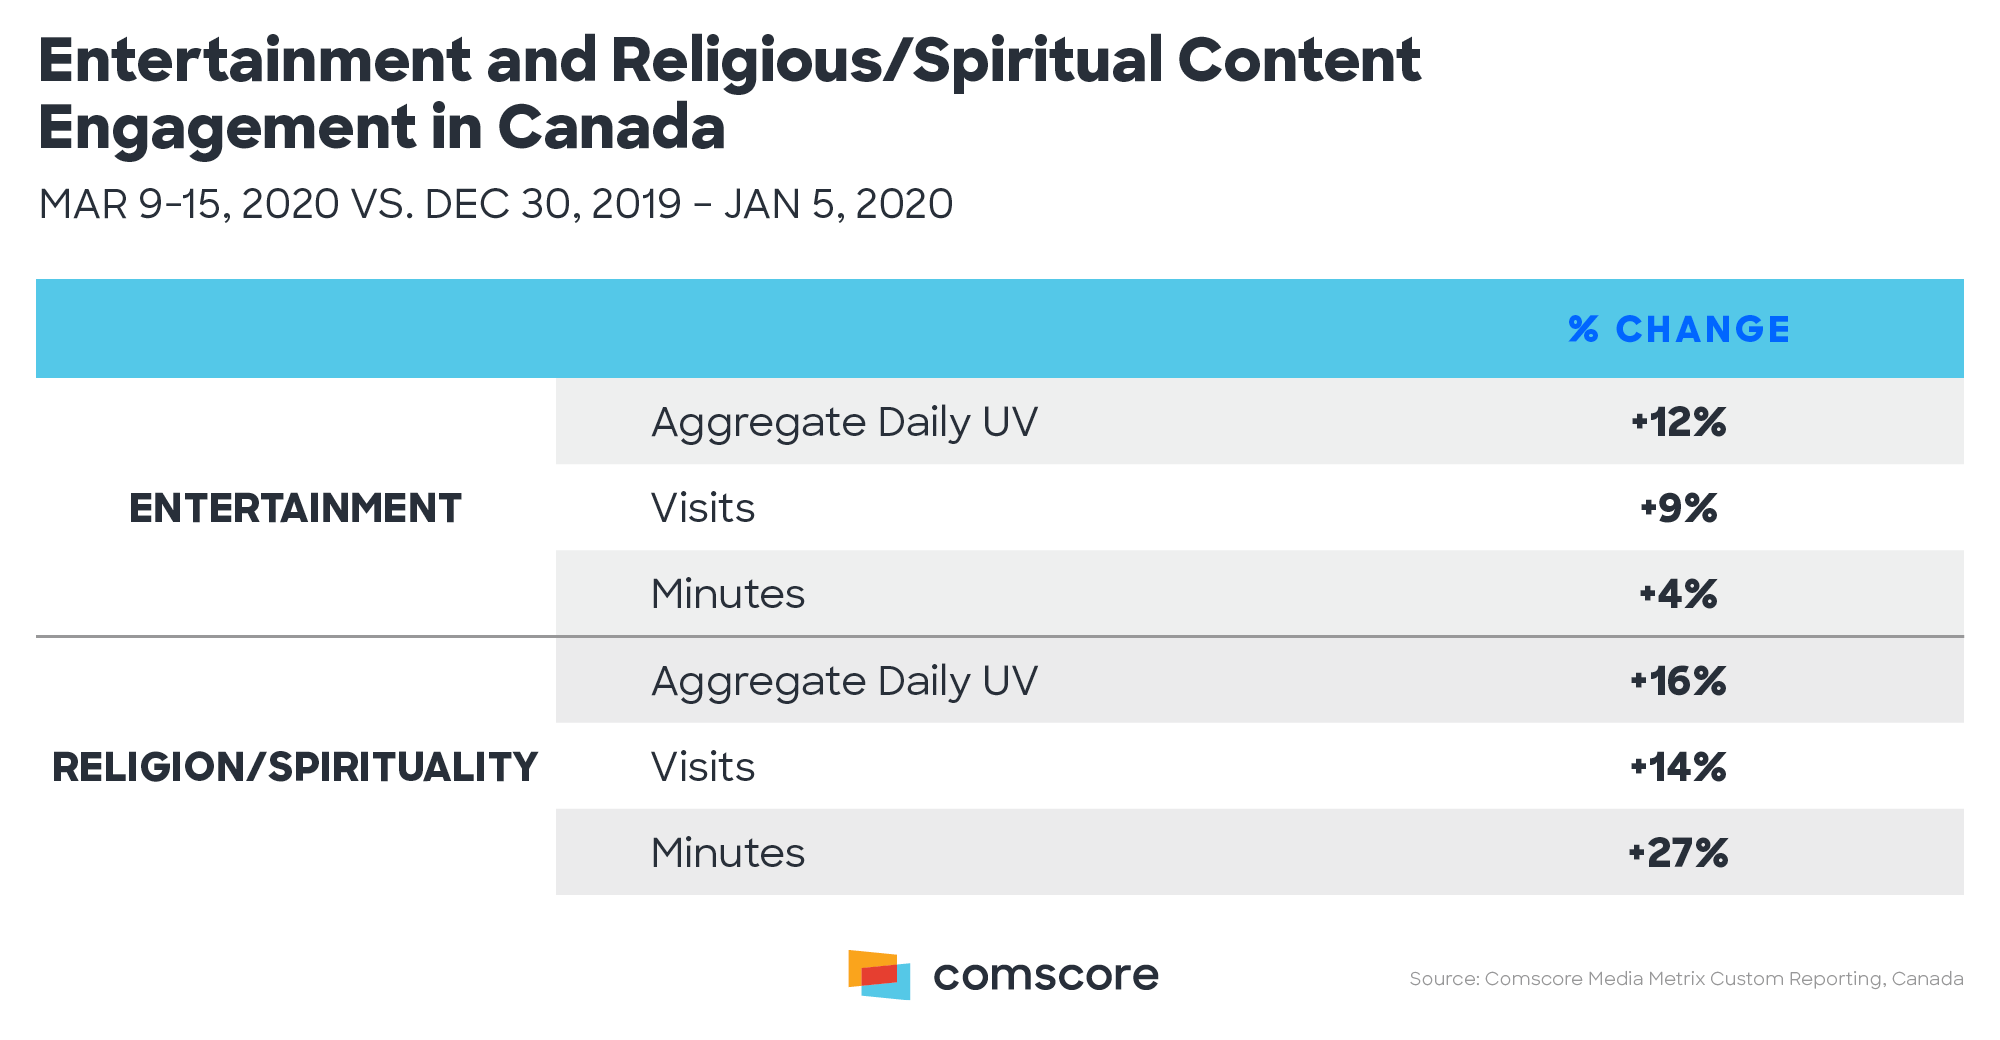 Entertainment and Religious/Spiritual Content Engagement in Canada